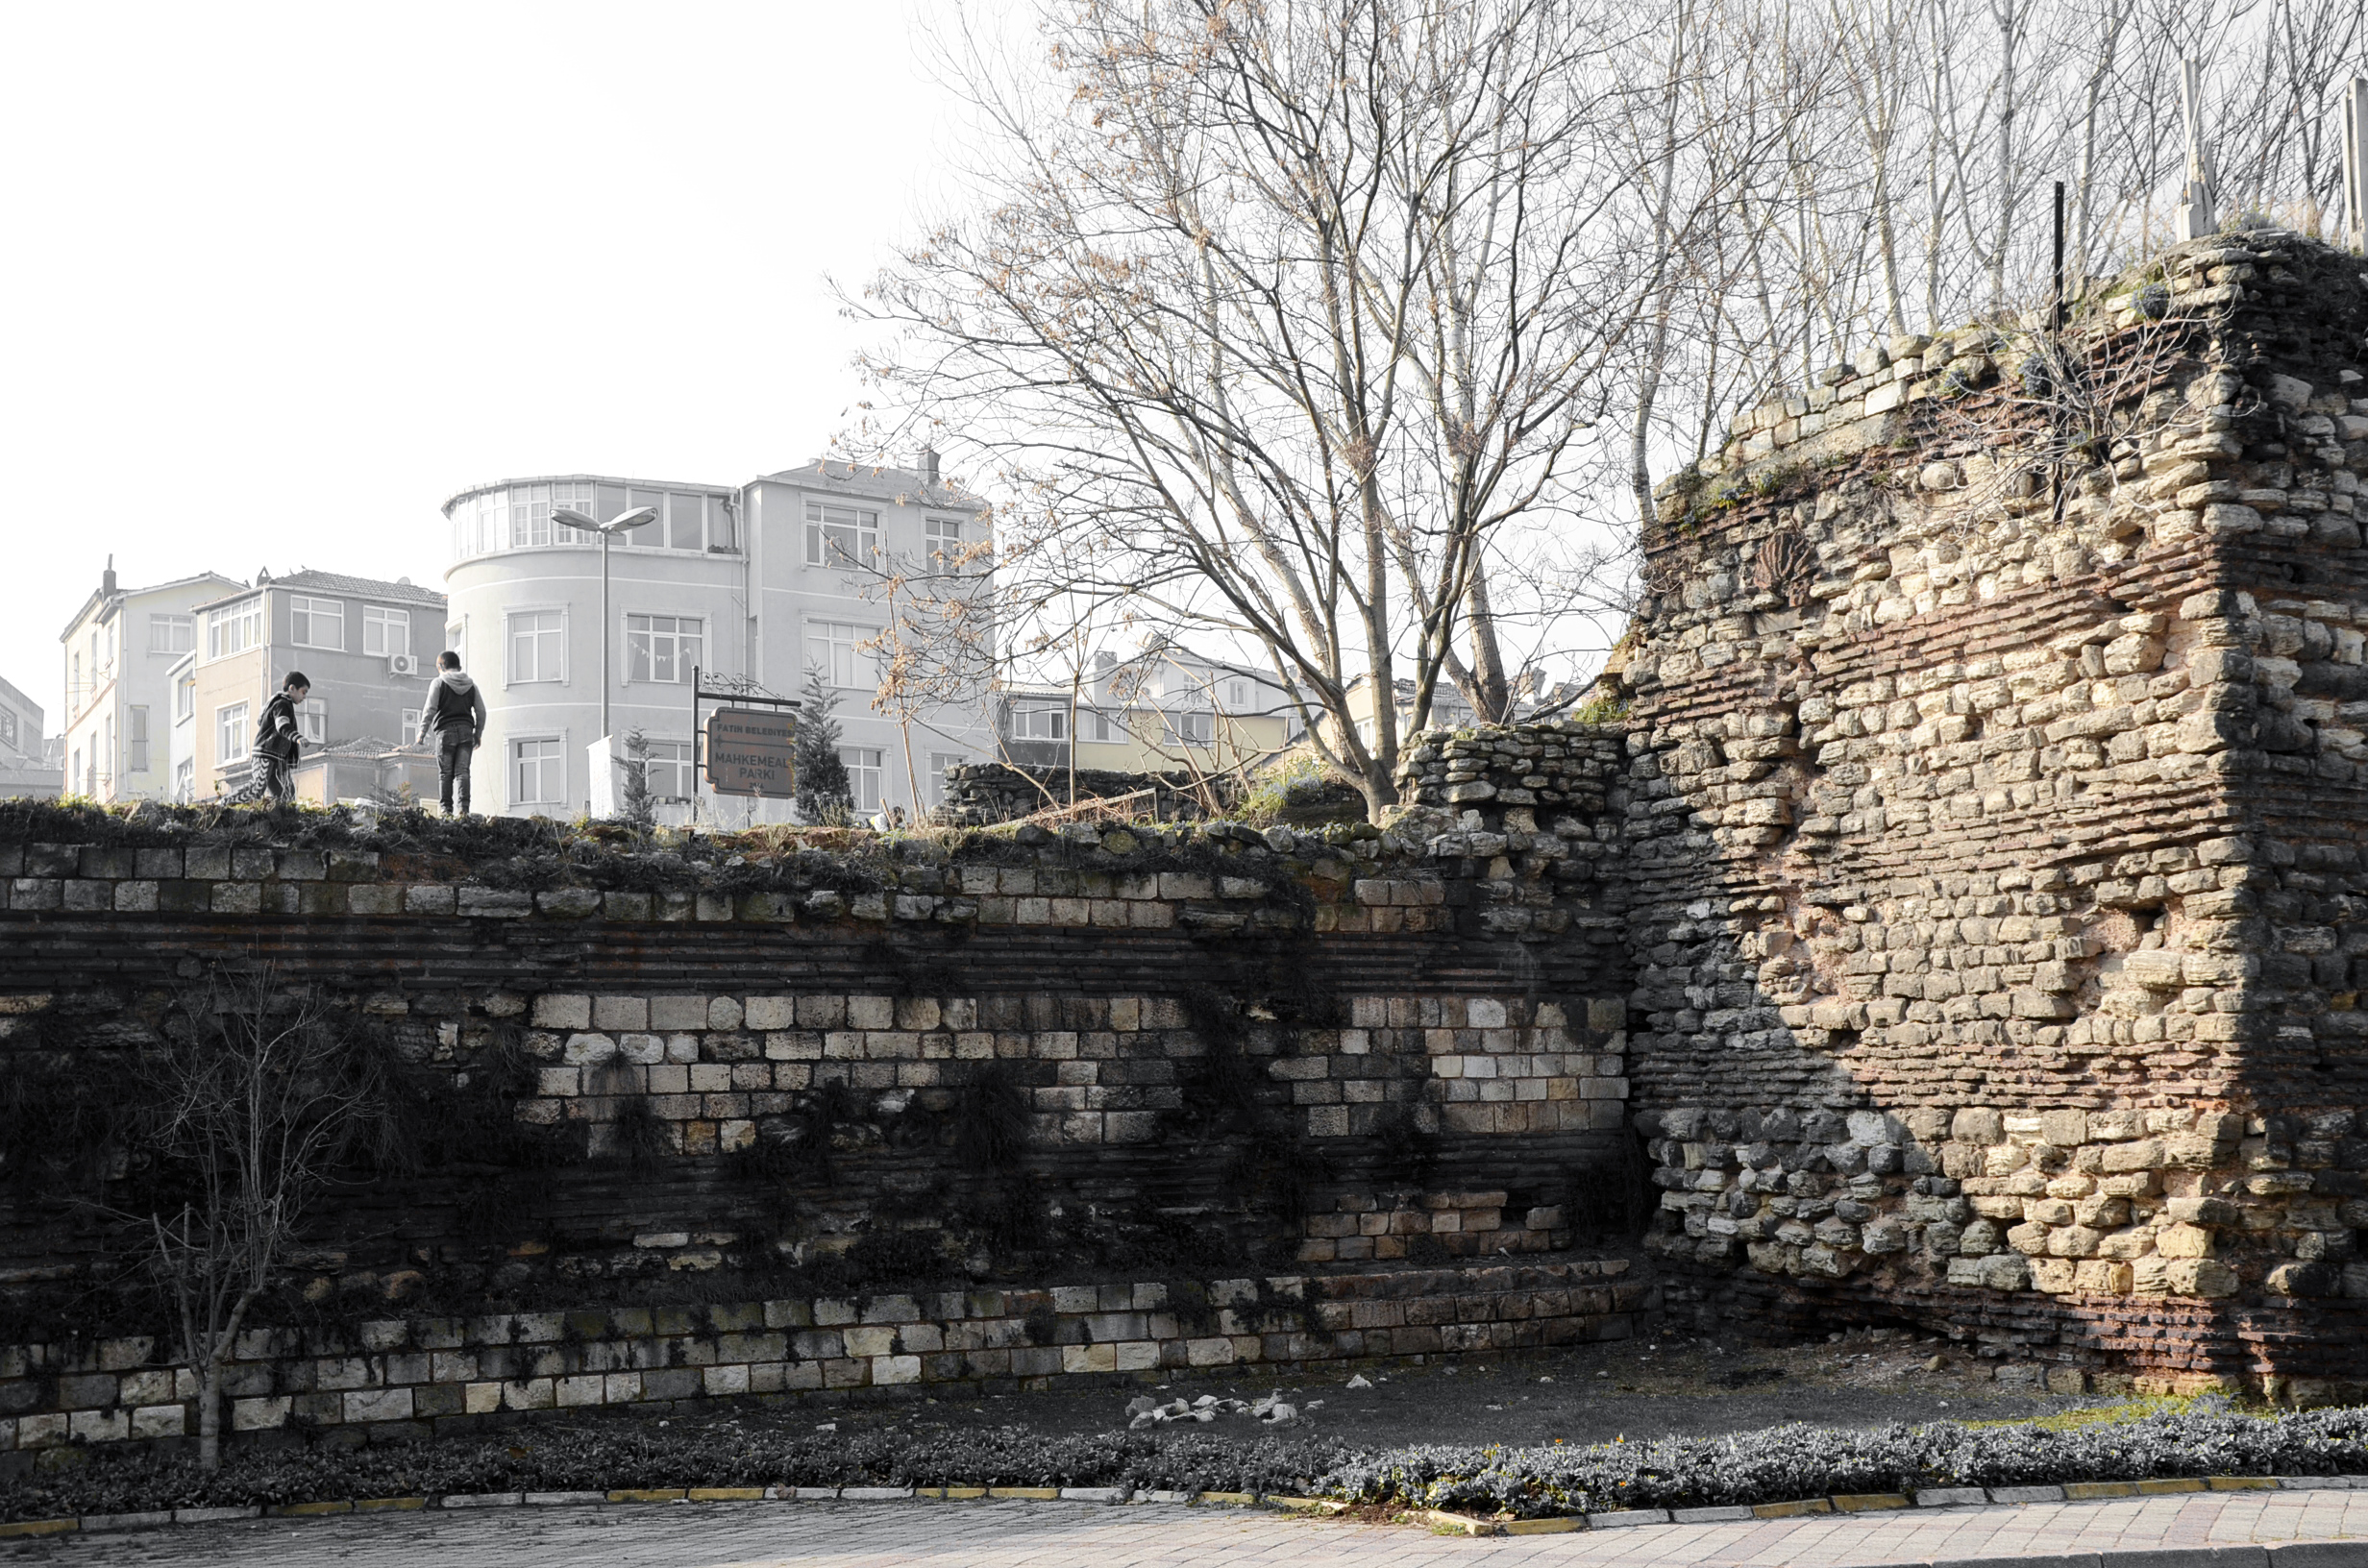 Theodosian section wall. Pic by Mimmo Piergiacomi